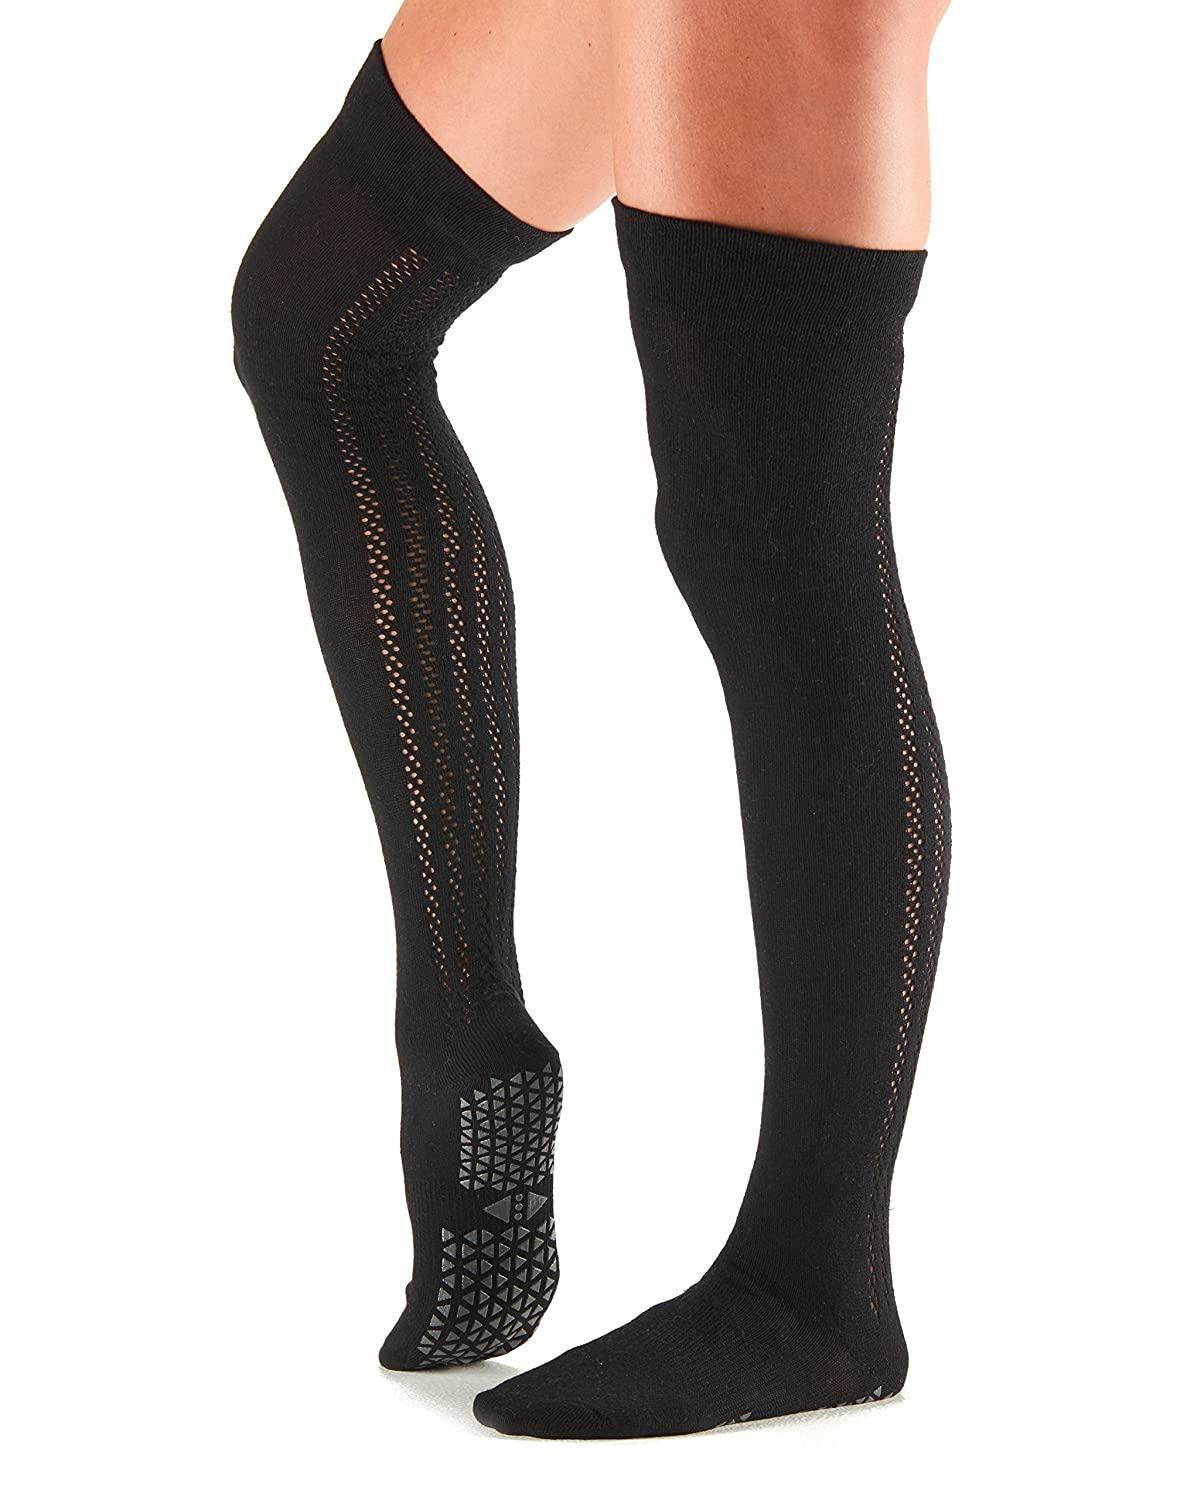 Tavi Noir Grip Kris Over the Knee High Grip Socks for Barre, Pilates, and Yoga, Ebony, Small